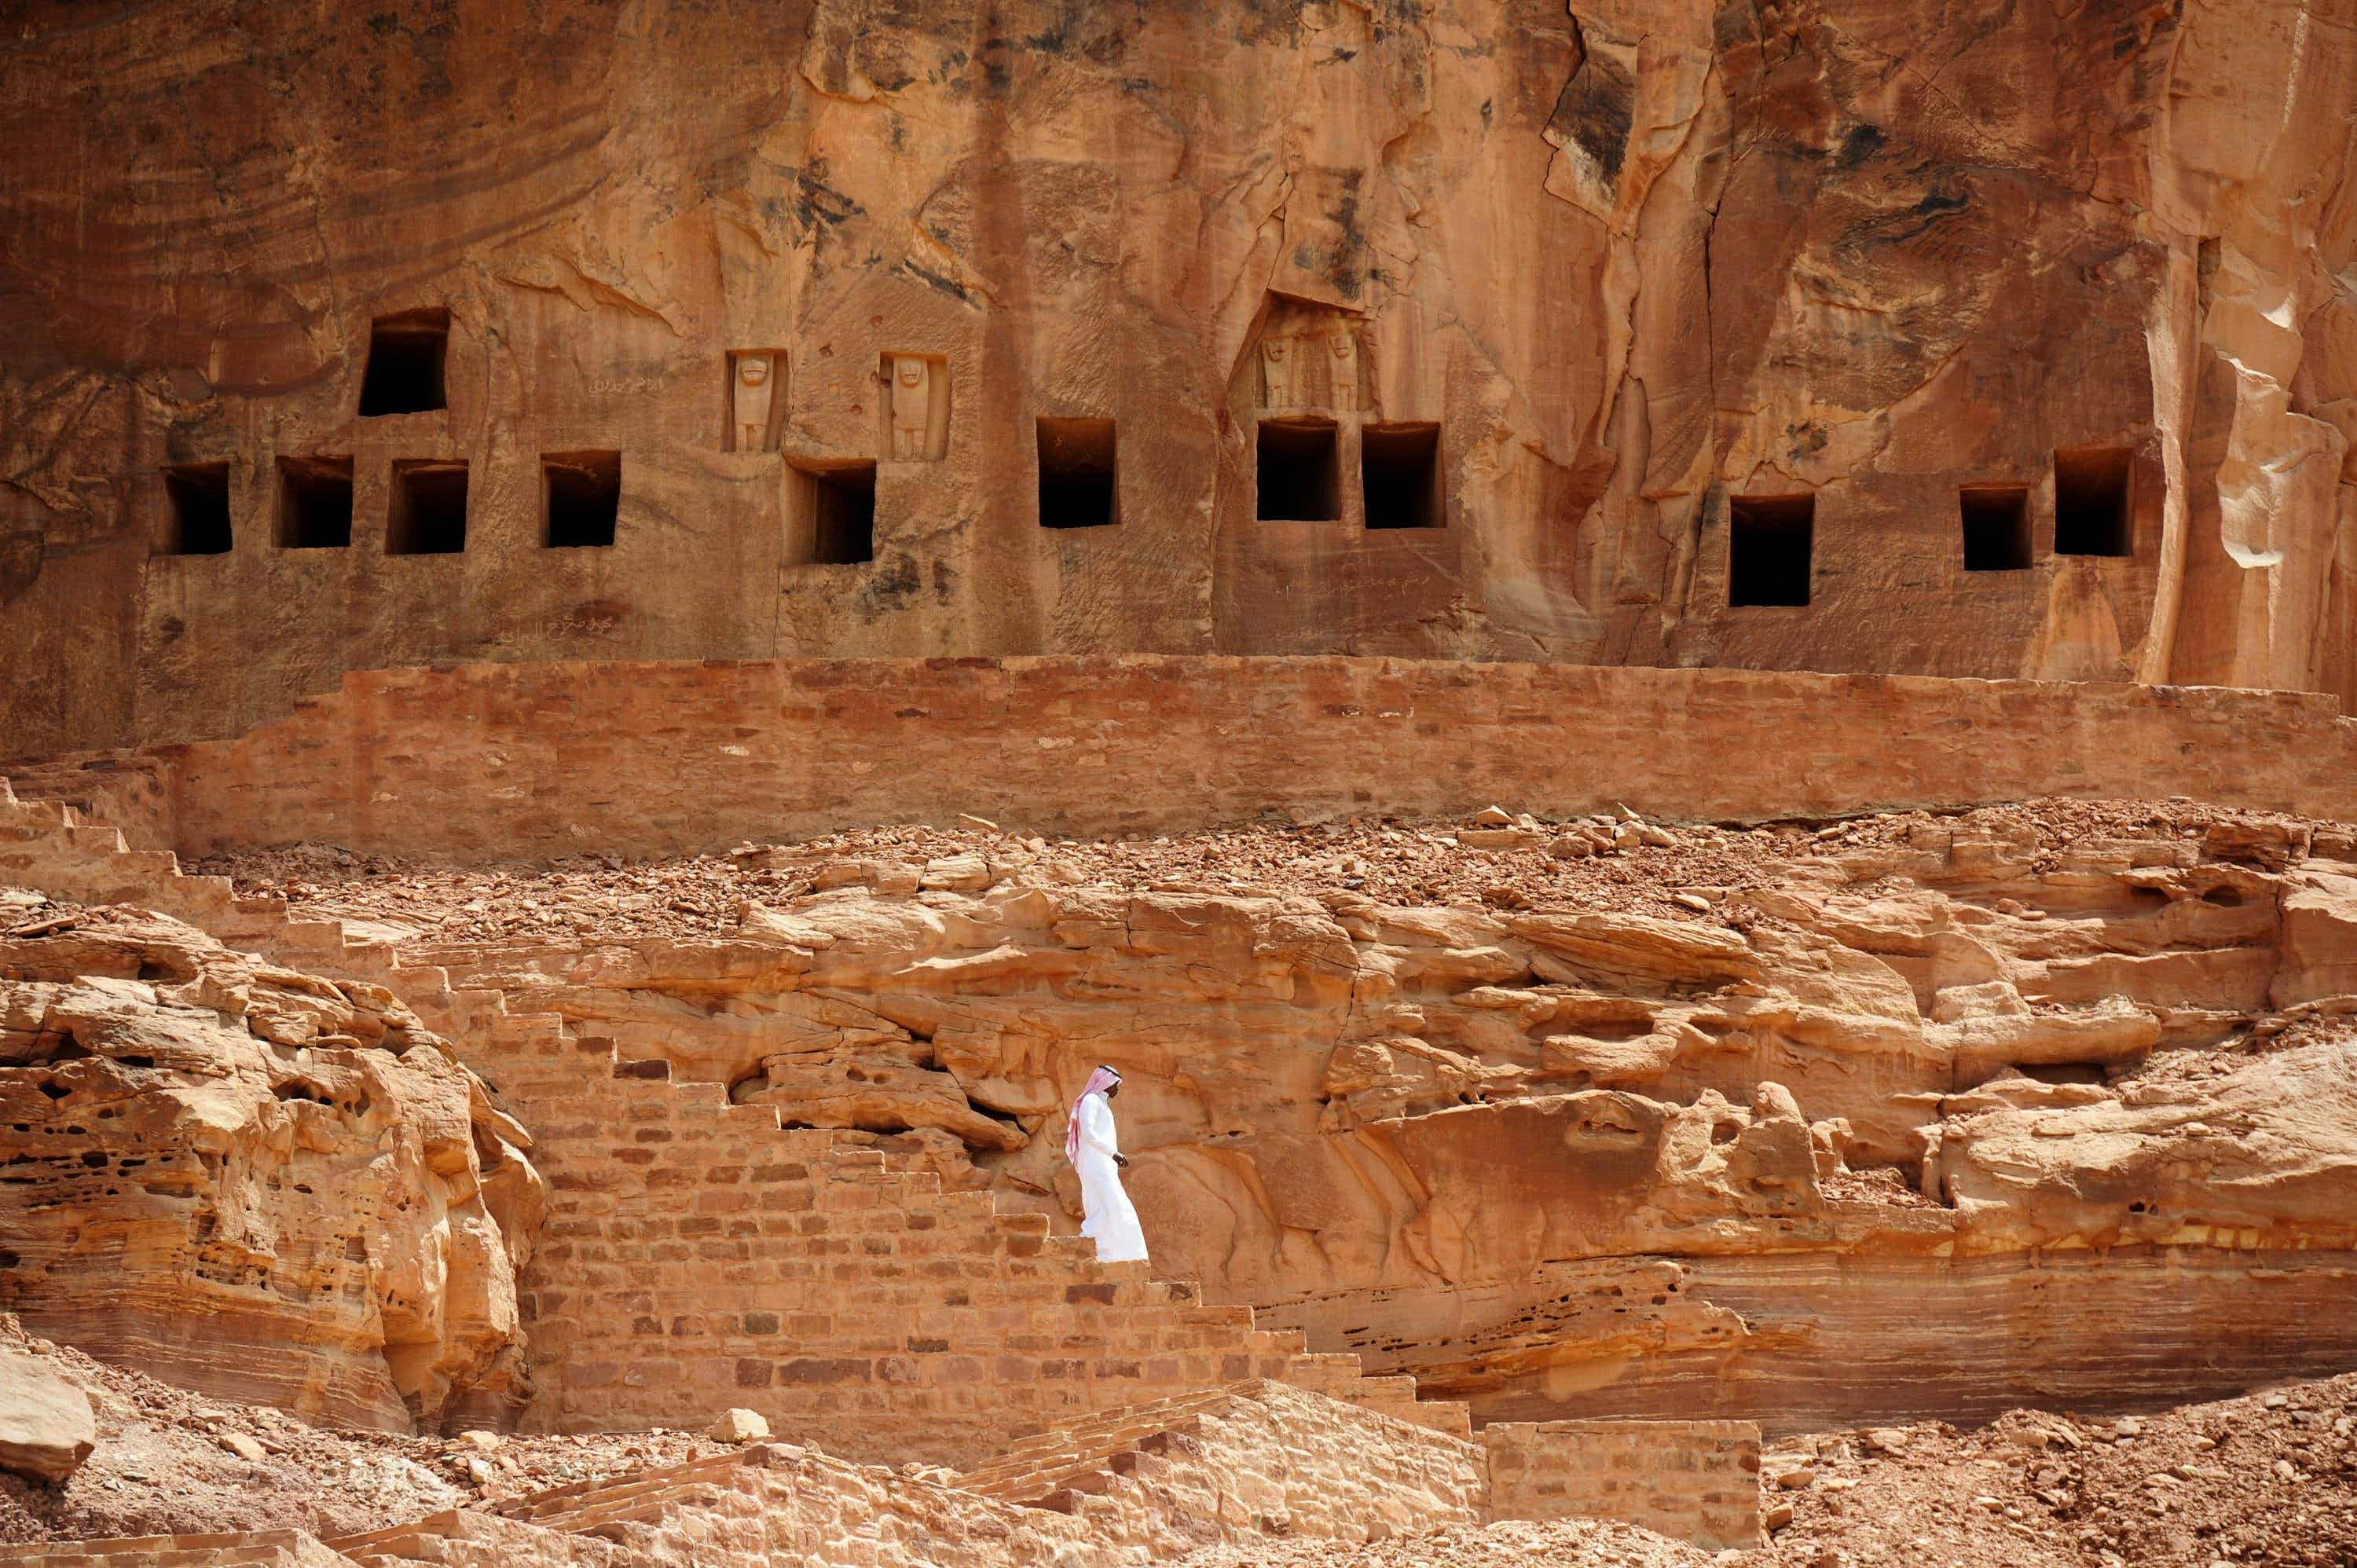 An incredible archaeological site in Saudi Arabia is preparing for tourism